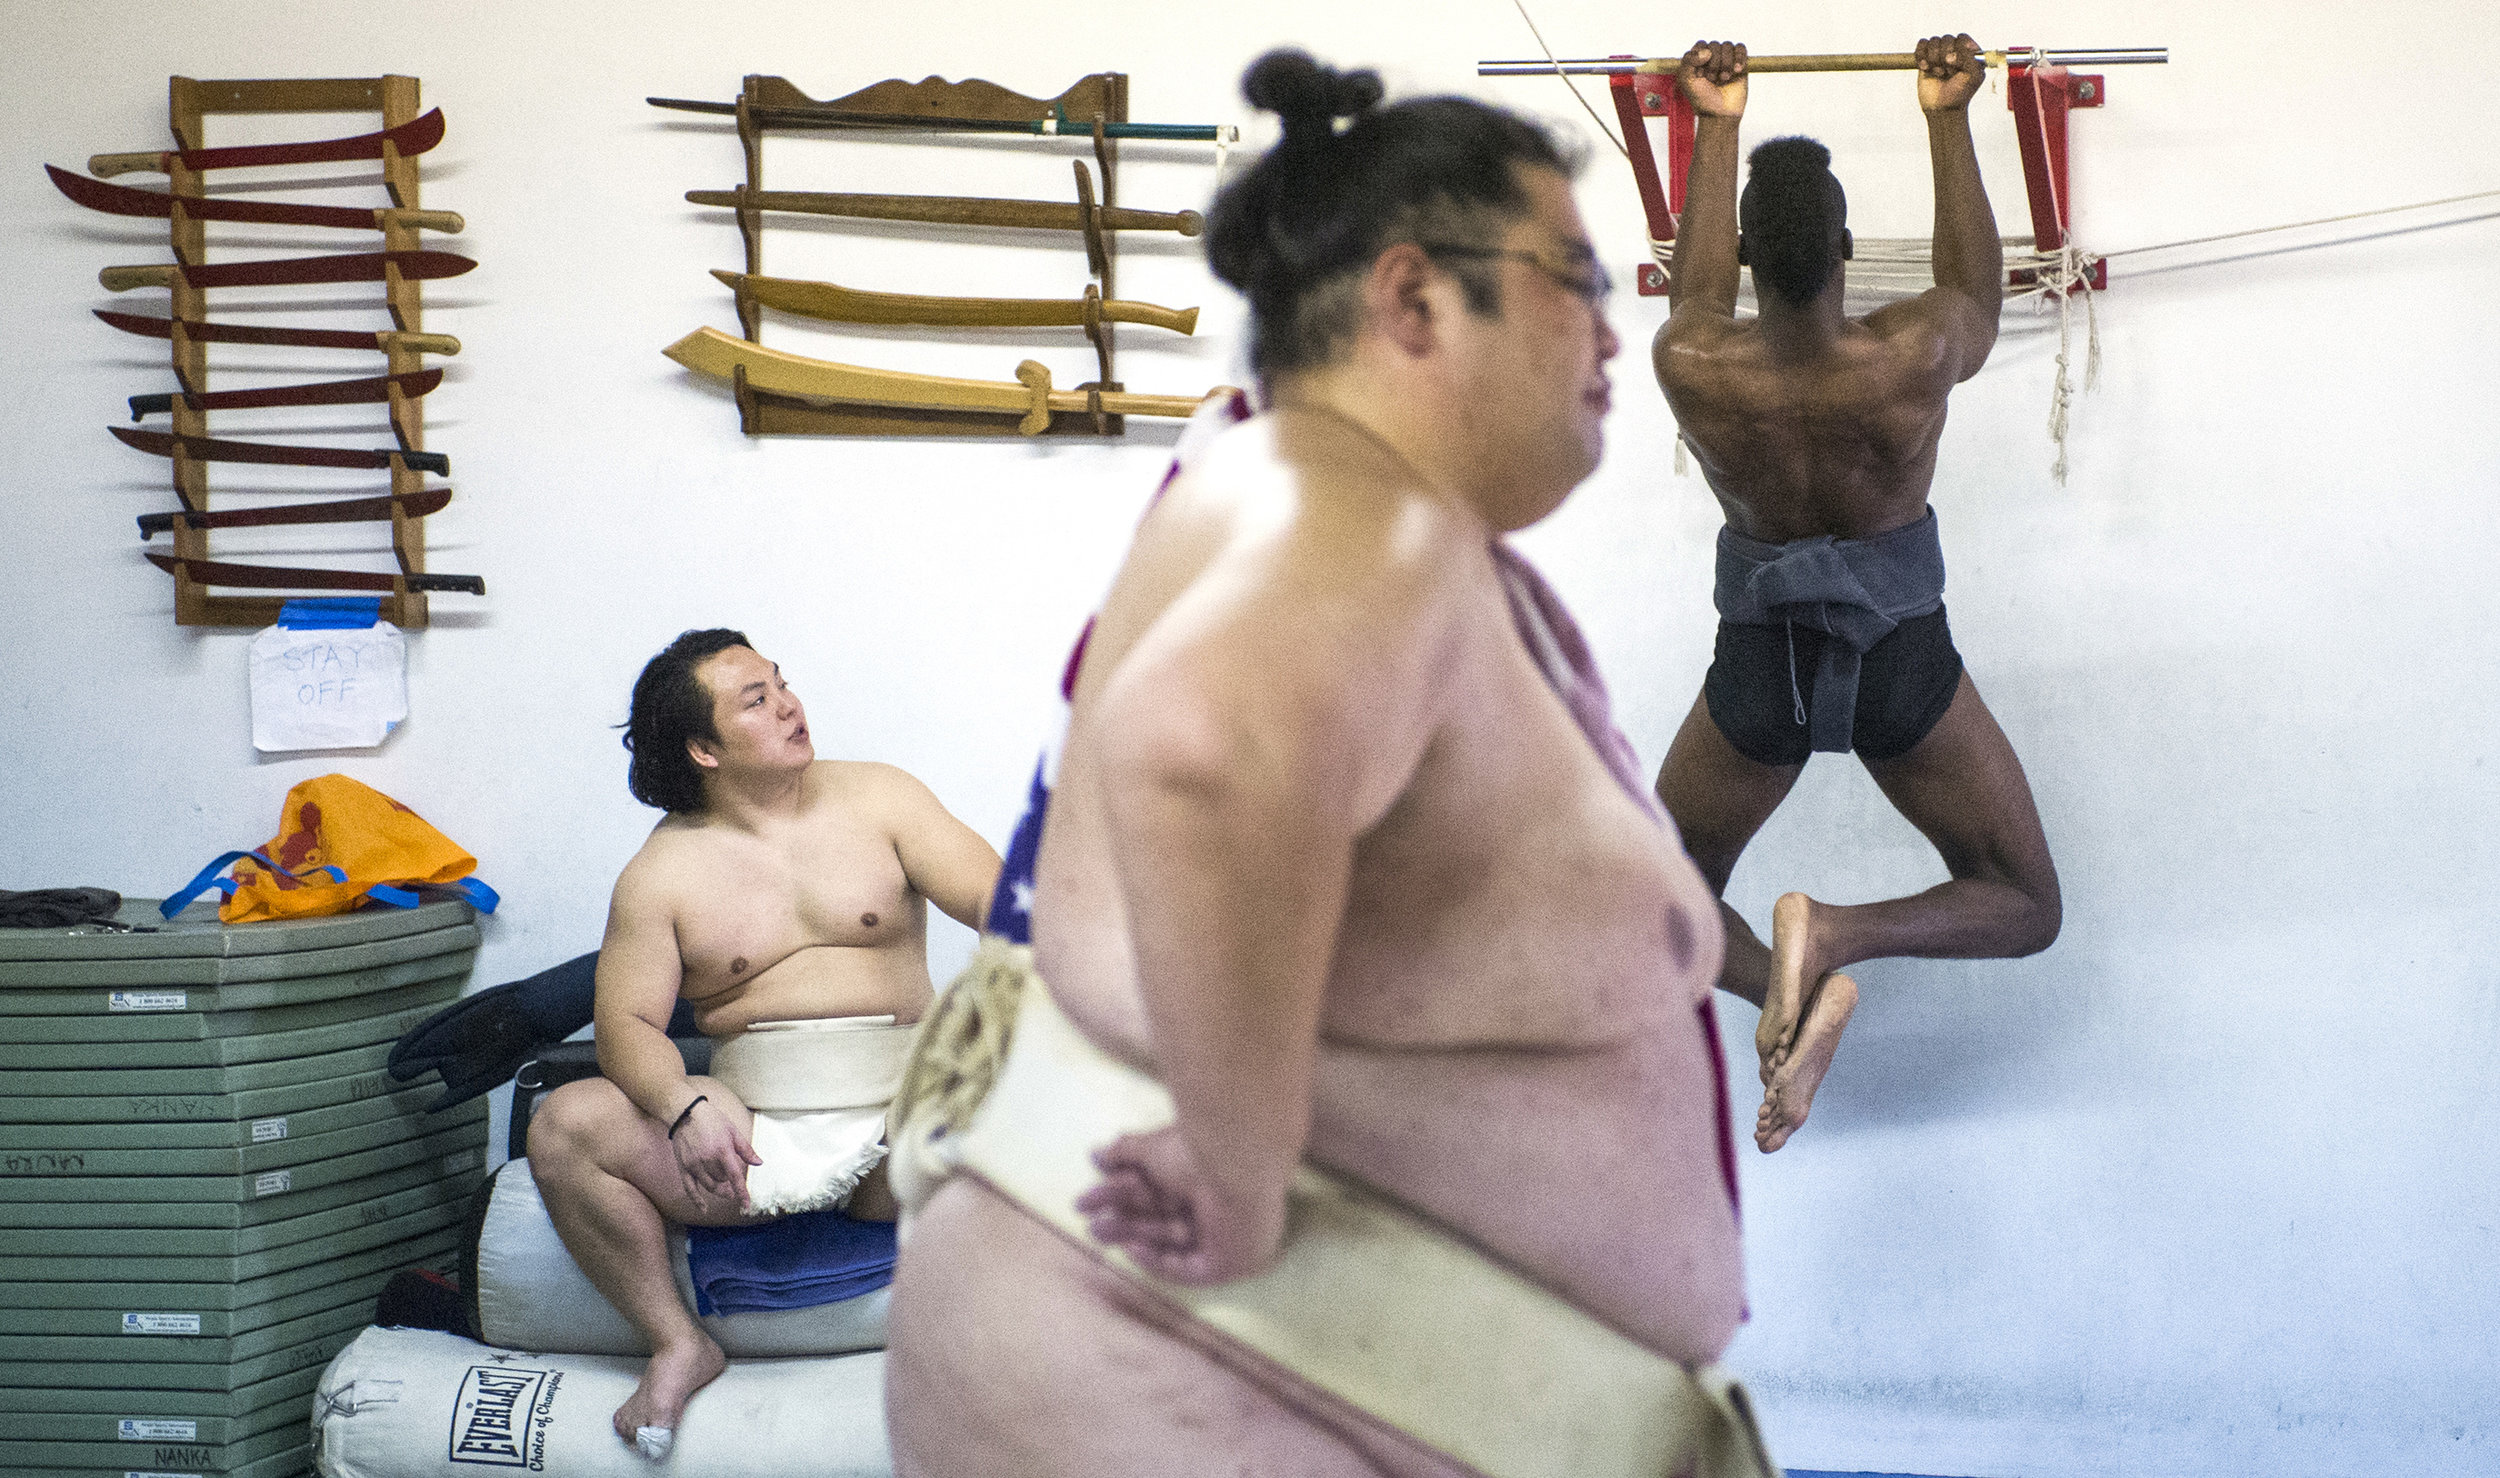 """Two-time World Sumo Champion Yamamotoyama or Yama, center, watches the sumo ring as Compton native Phillip """"Monster"""" Barnes, of Compton, do pull-ups and  Takeshi Amitani, of Japan, looks on during a sumo wrestling practice in Carson Sunday, April 8, 2018. Amitani coaches and trains with Monster as the two will enter the same weight class this year for the US Sumo Open. Amitani is a 5-time Japanese National University Champion, he also was the undefeated Openweight champion in the  US Sumo Open last year. This will be Monster's second sumo competition."""